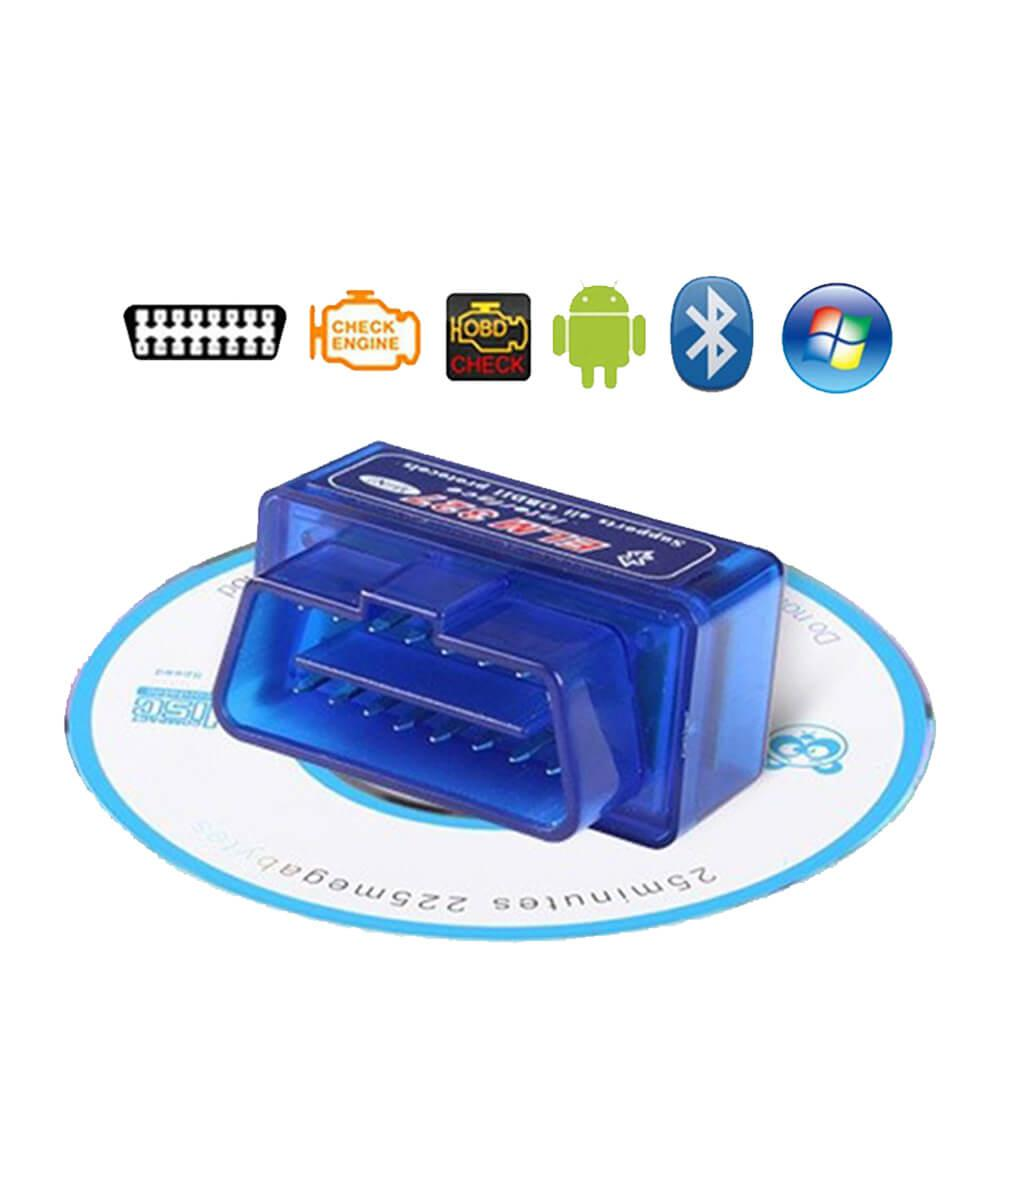 Obd2 ELM327 Bluetooth Car Diagnostic Scanner Tool -al